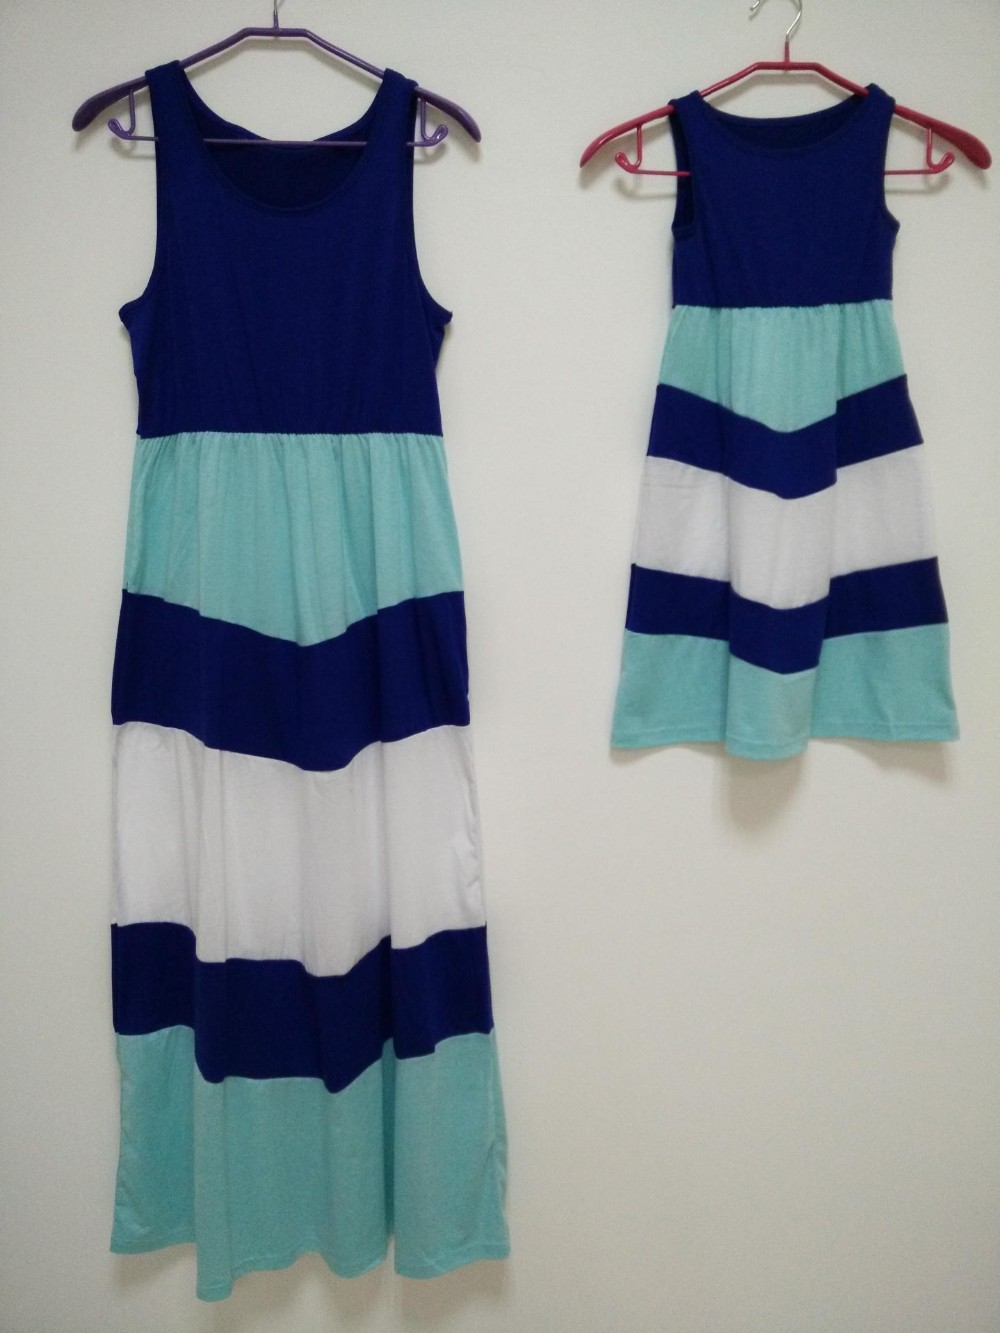 mother daughter dresses (5)